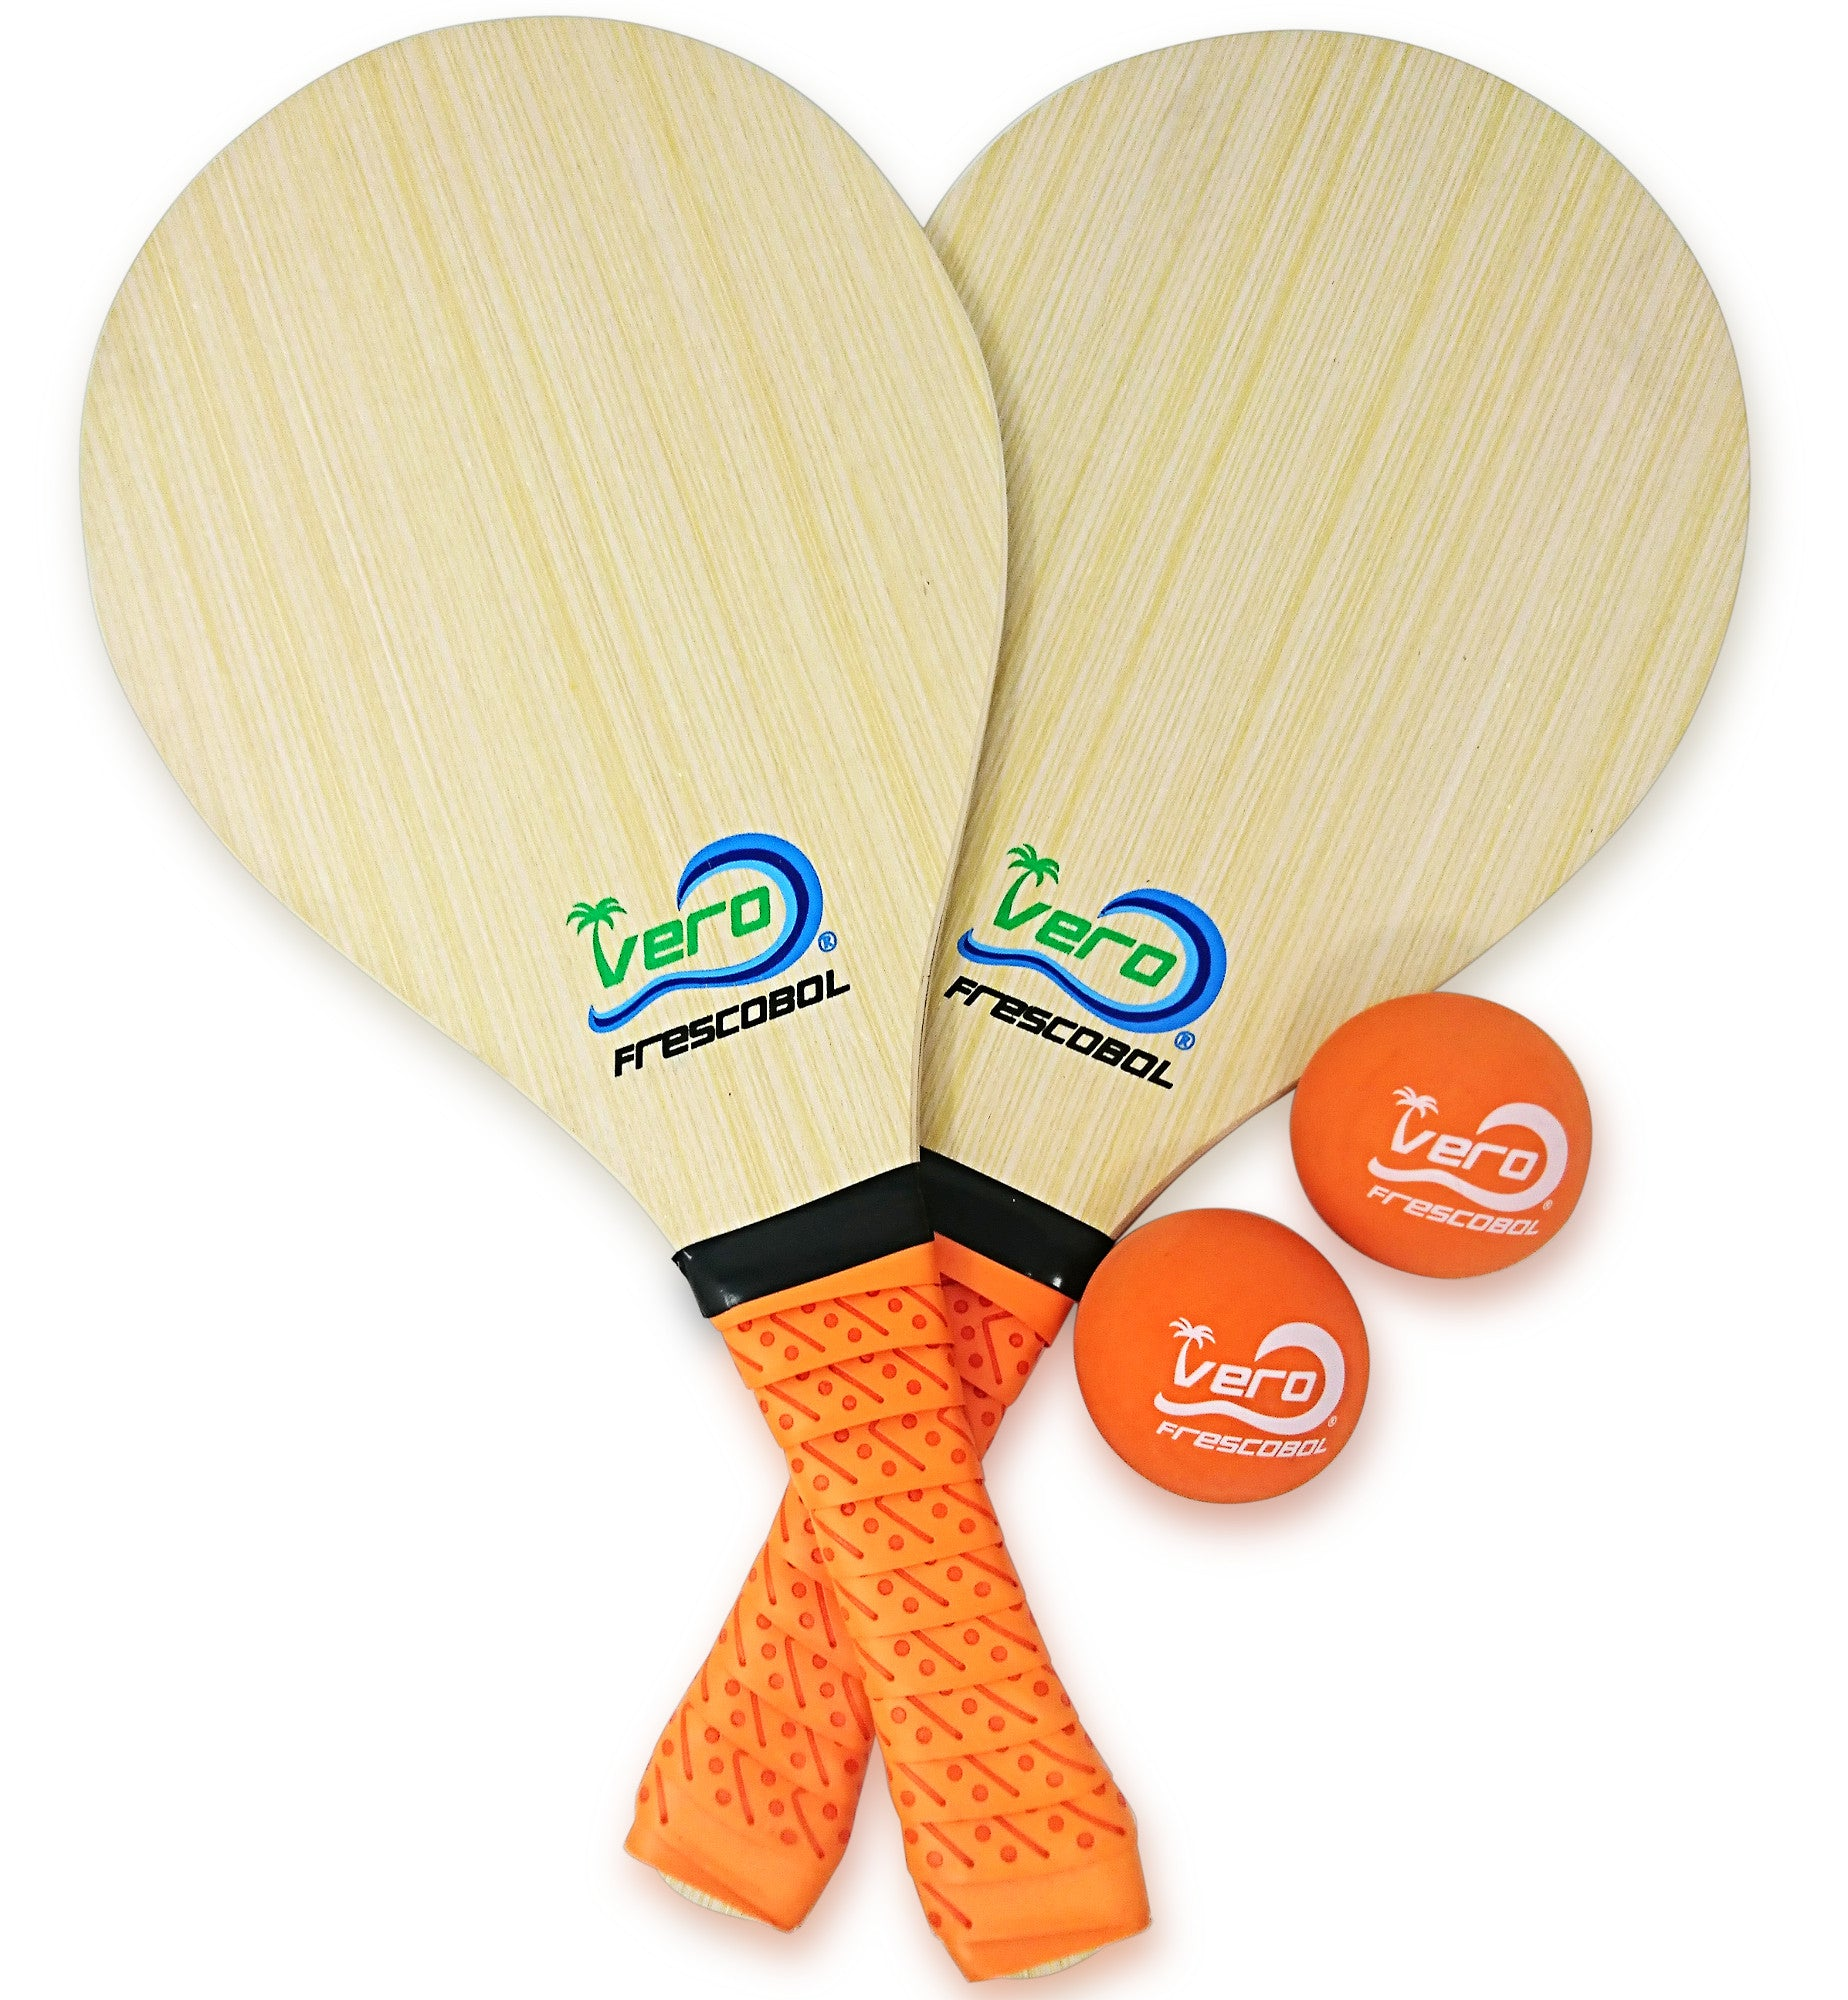 Florida Orange Wood Frescobol Beach Paddle Game Kit